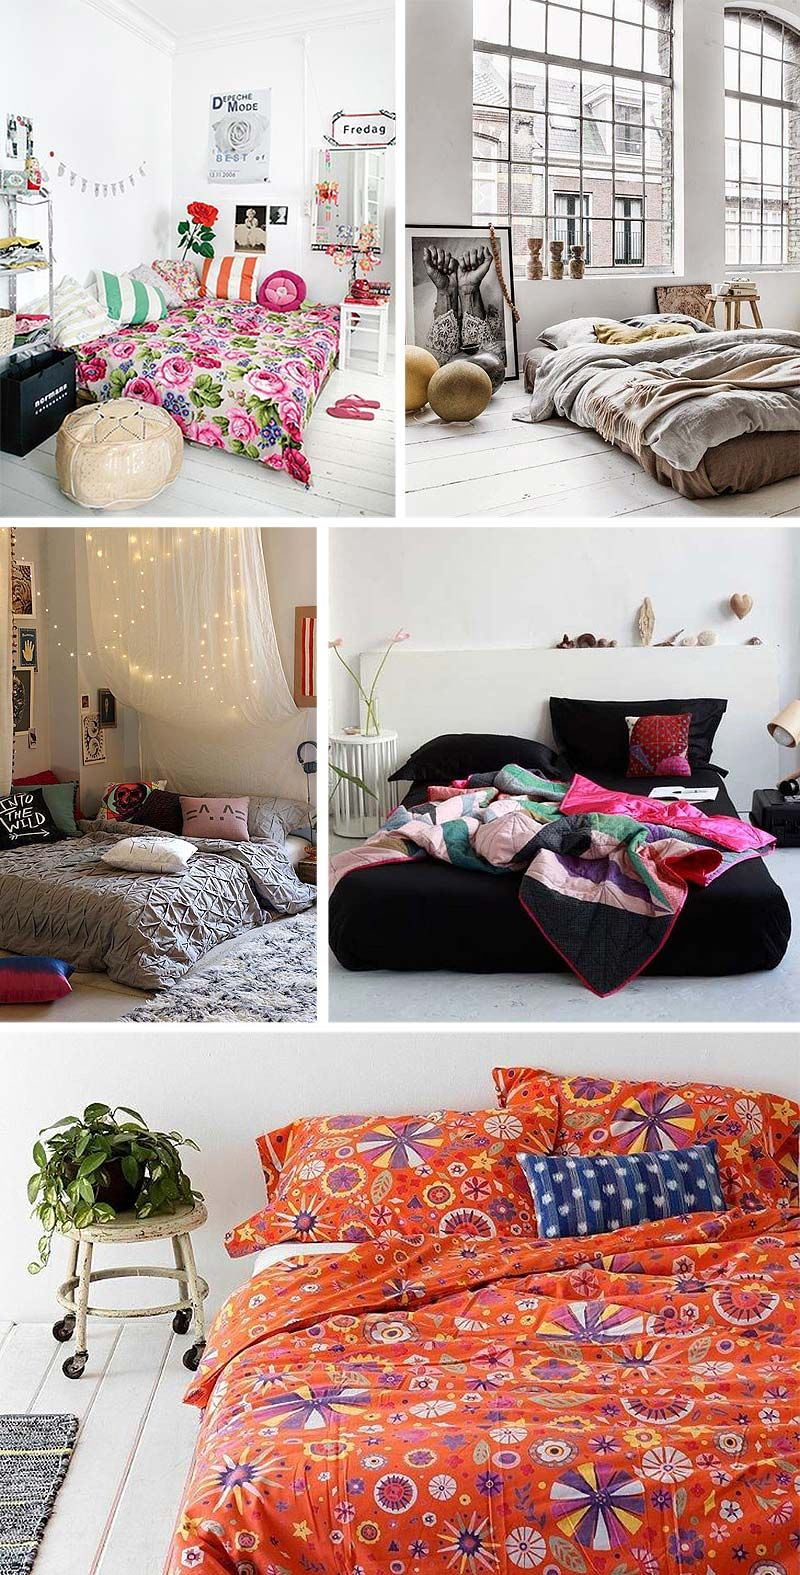 M s de 25 ideas incre bles sobre cama no chao en pinterest for Cama sencilla